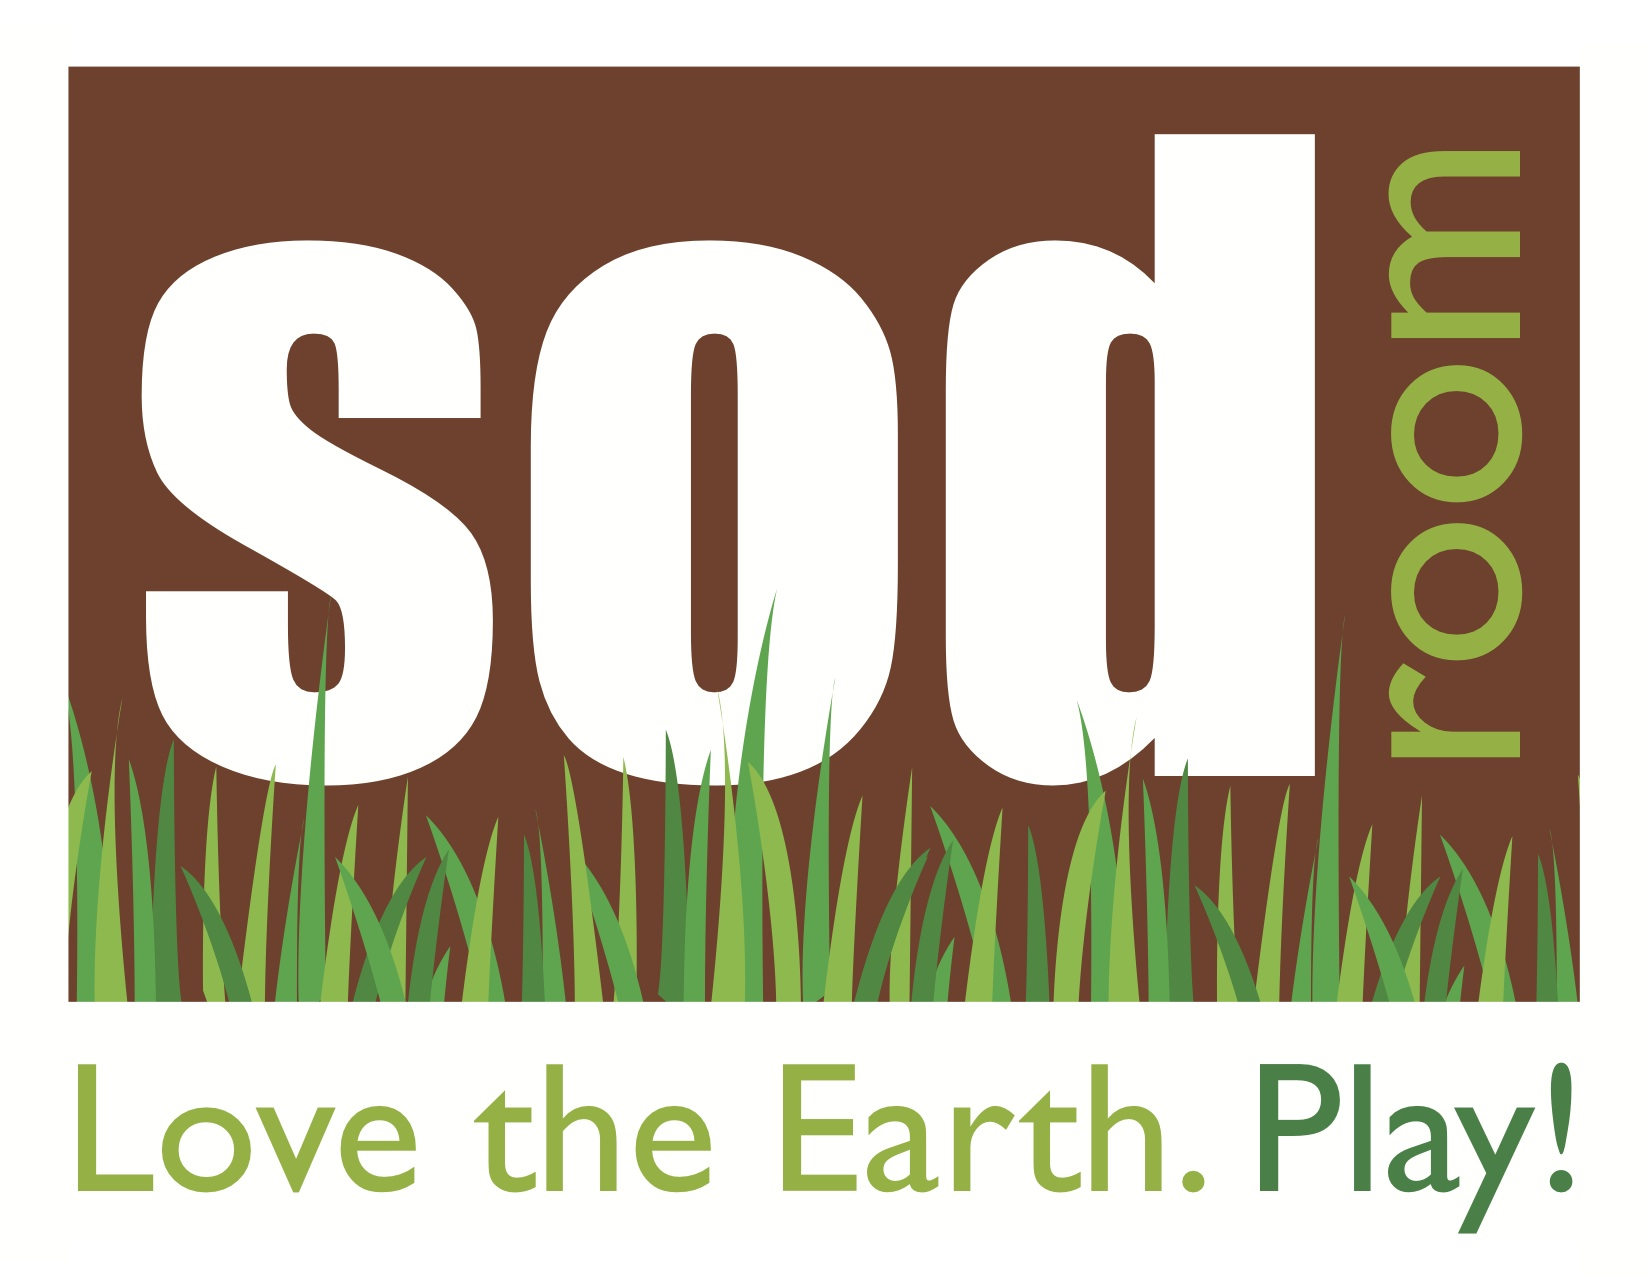 Sod Room - Popup playspace experience for children with music, yoga, crafts & developmental activities.Thursday, June 6th - Thursday, July 11thThursday, August 1st; Thursday, September 5th